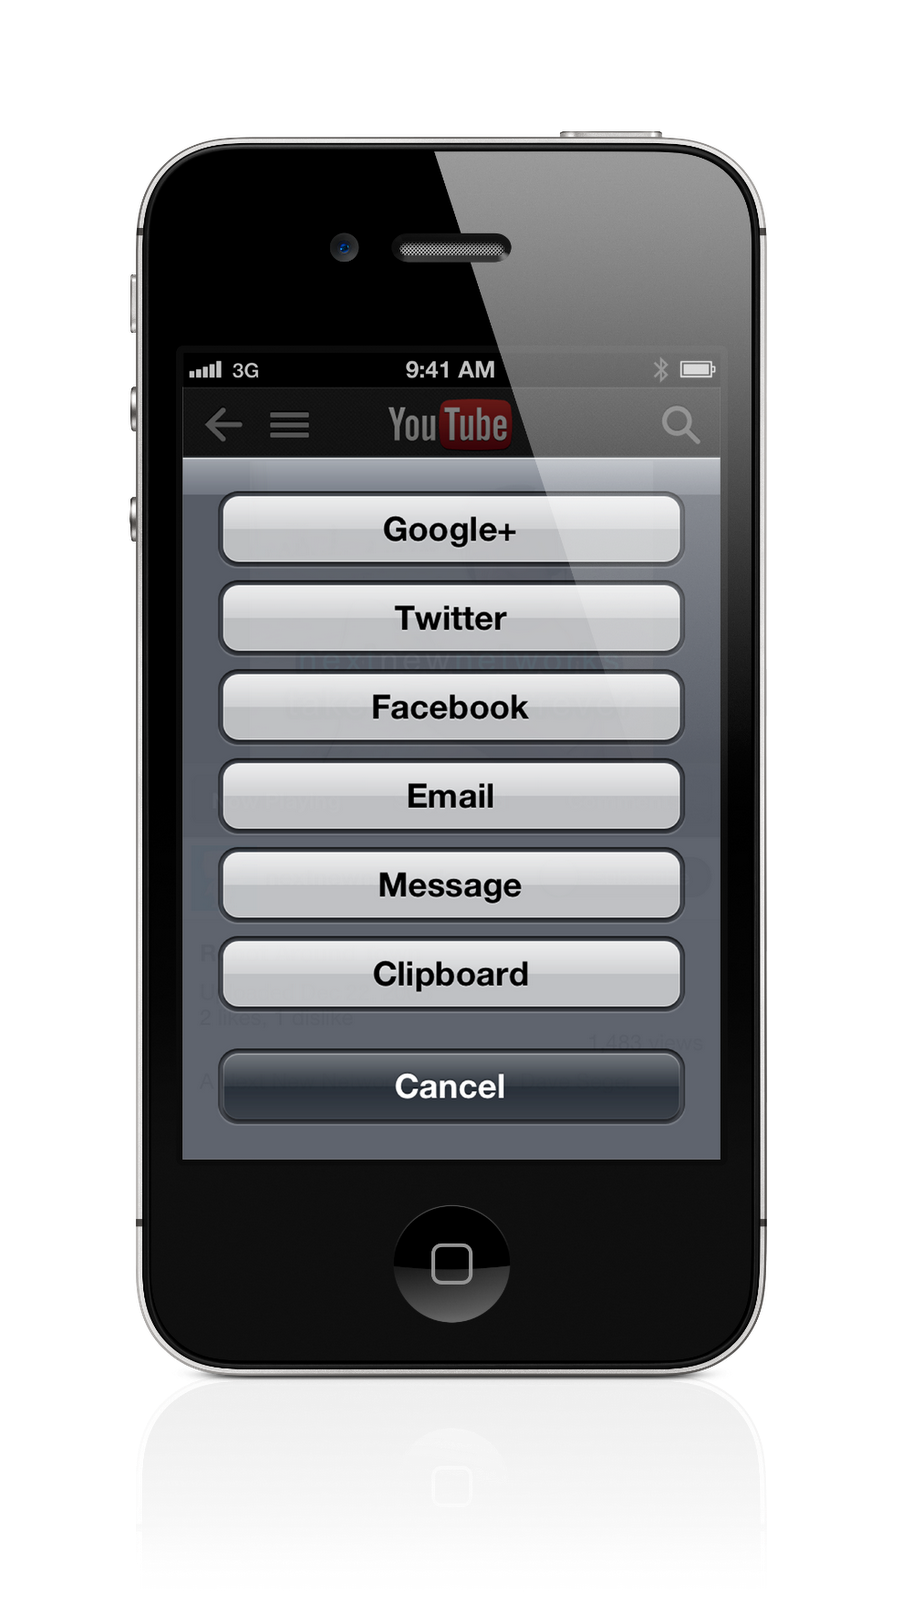 Document 5 Search Bar. Step 2 Enter YouTube video URL on iPhone